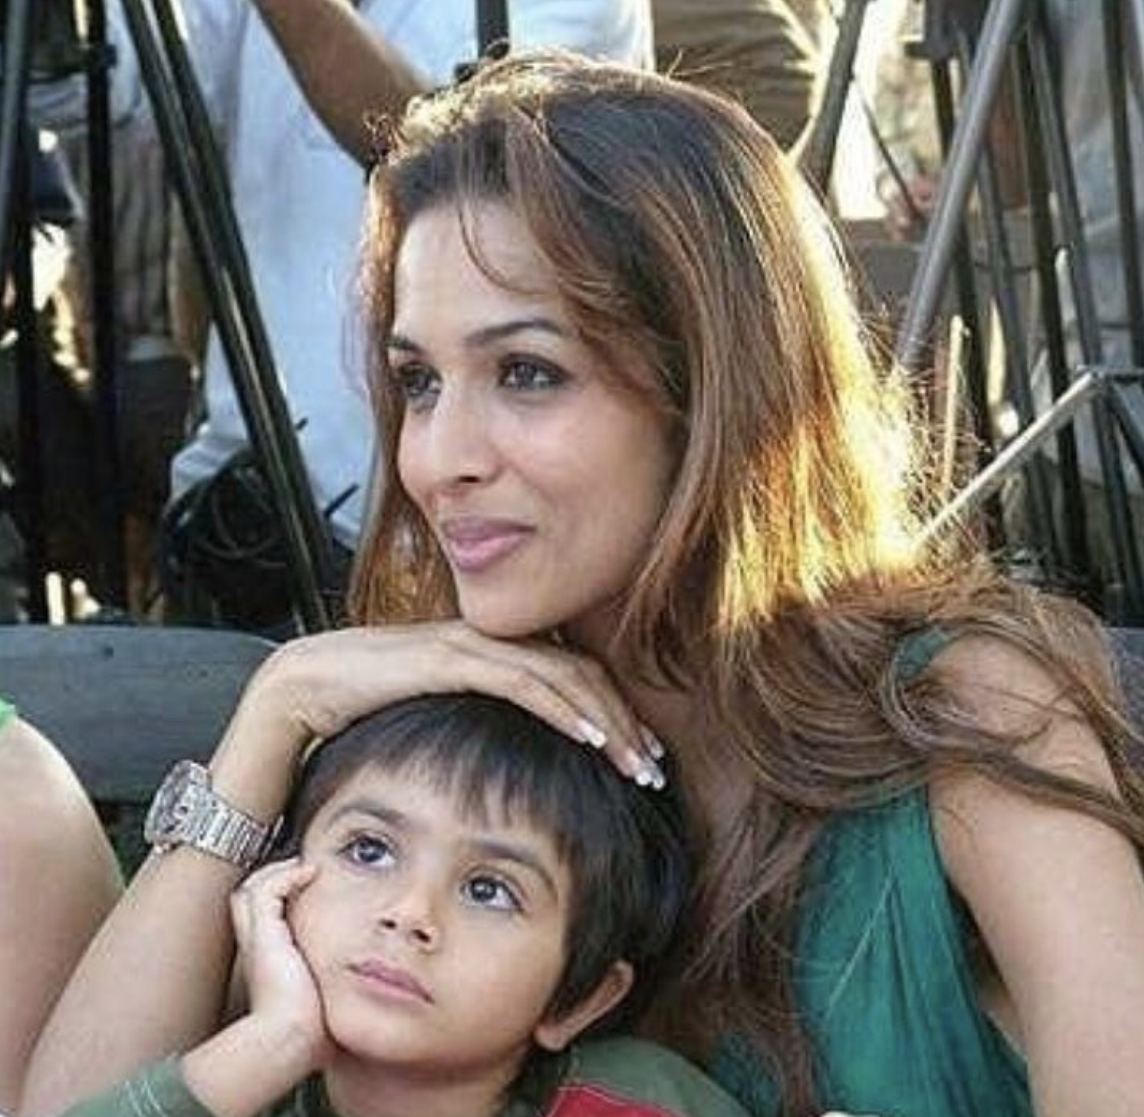 Malaika Arora on Being a Parent and Having a Relationship at the Same Time